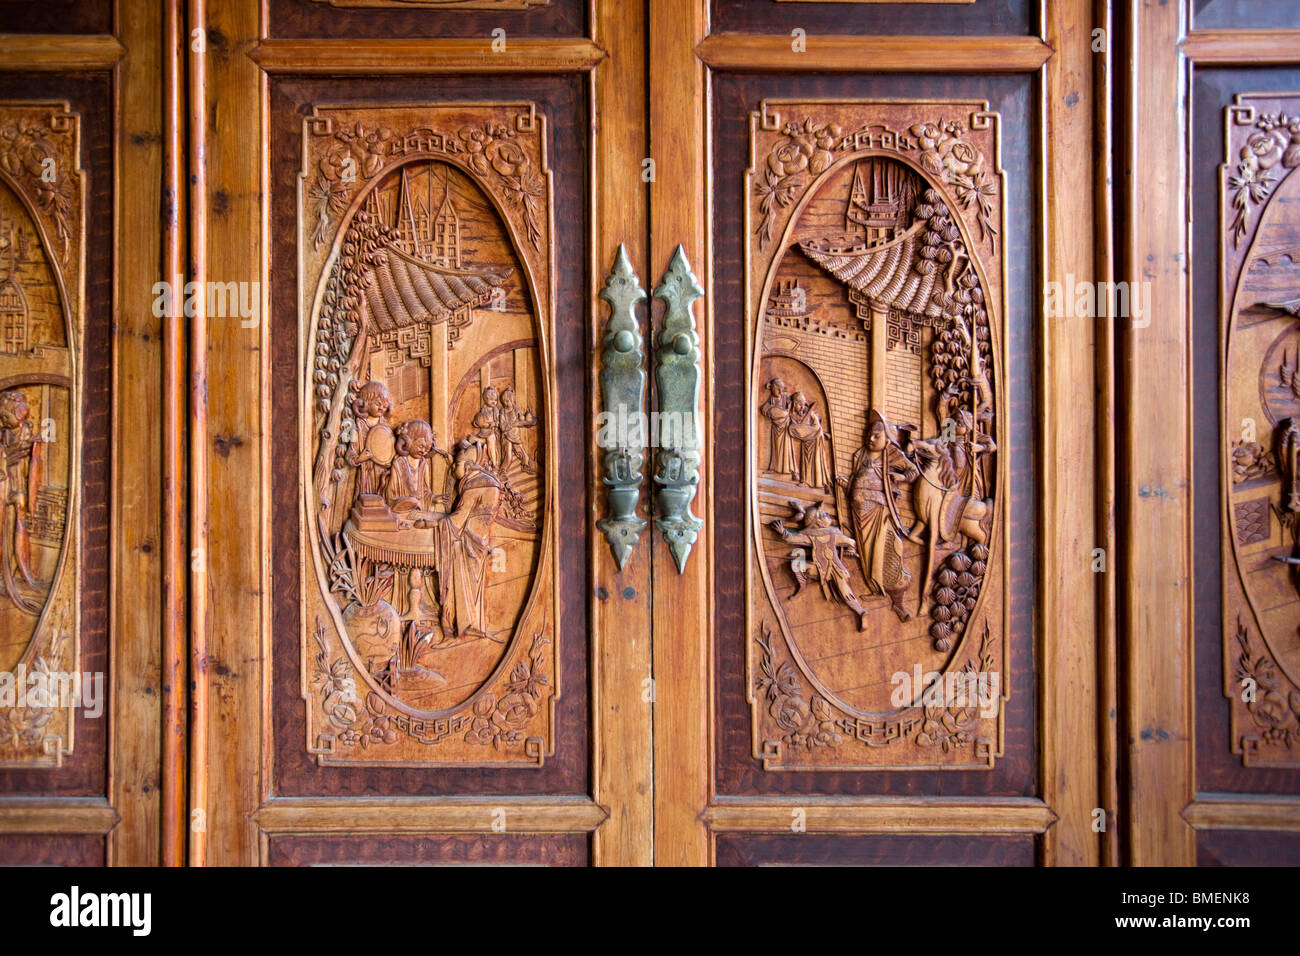 Detail Of Wooden Closet Door Carved With Ancient Stories